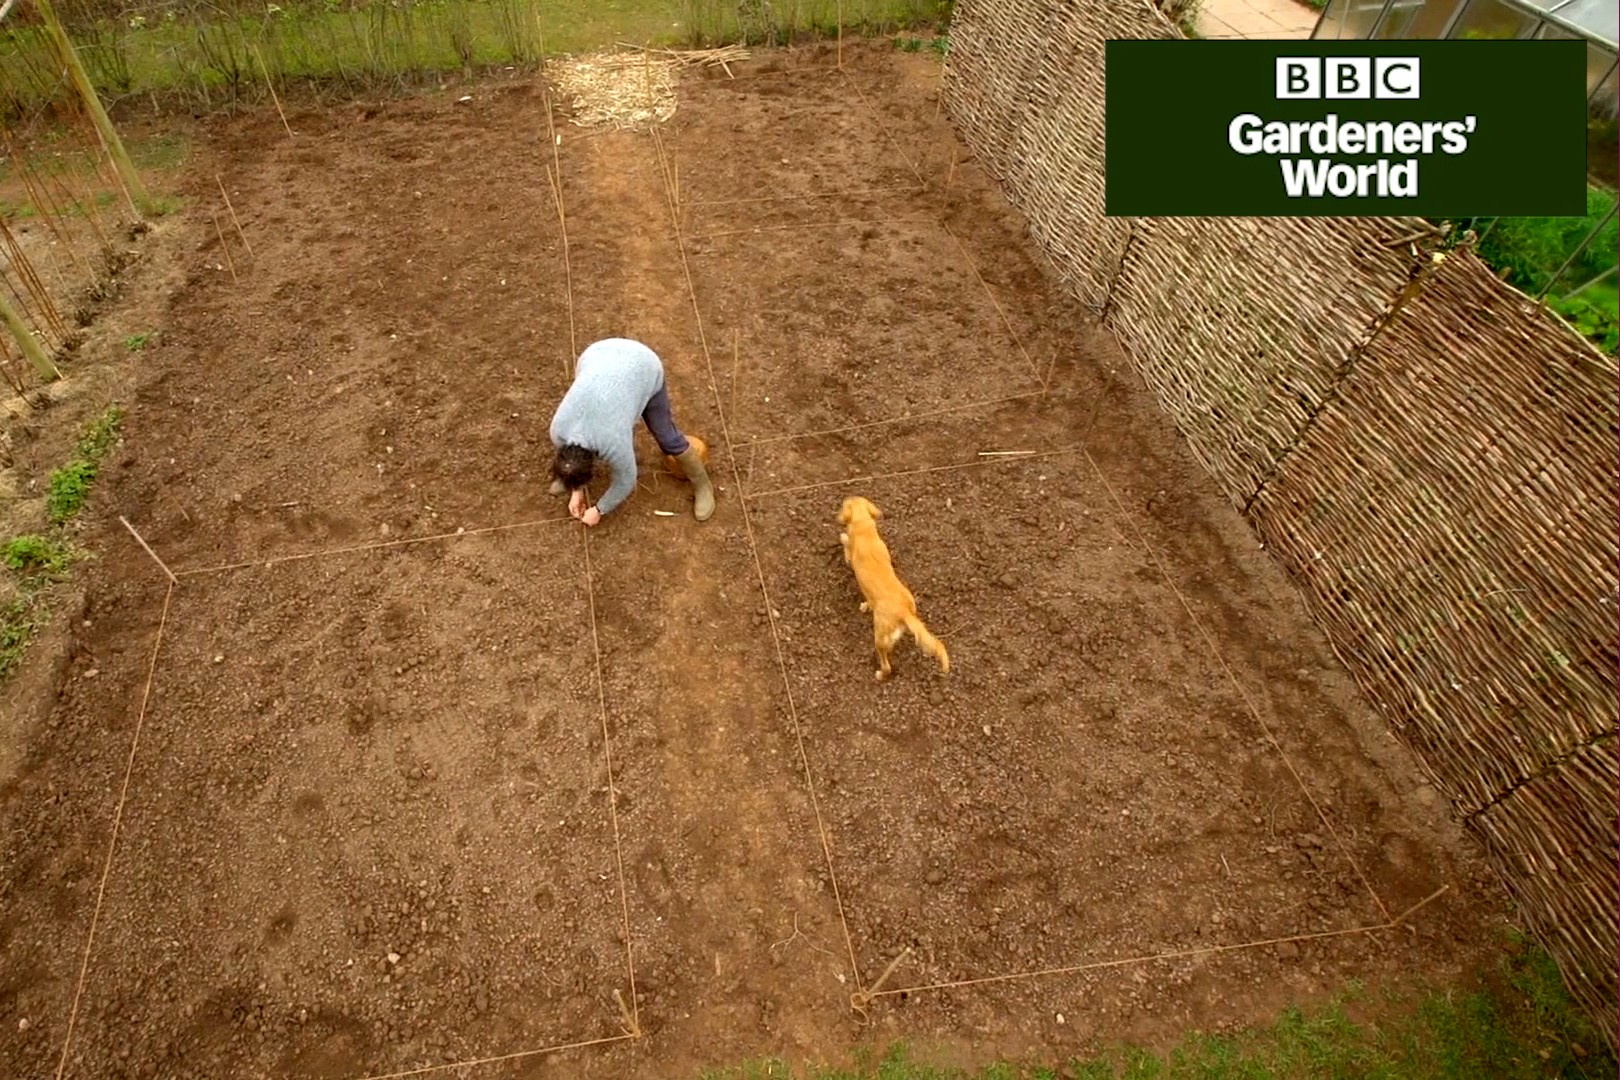 Monty Don marking out a new veg plot